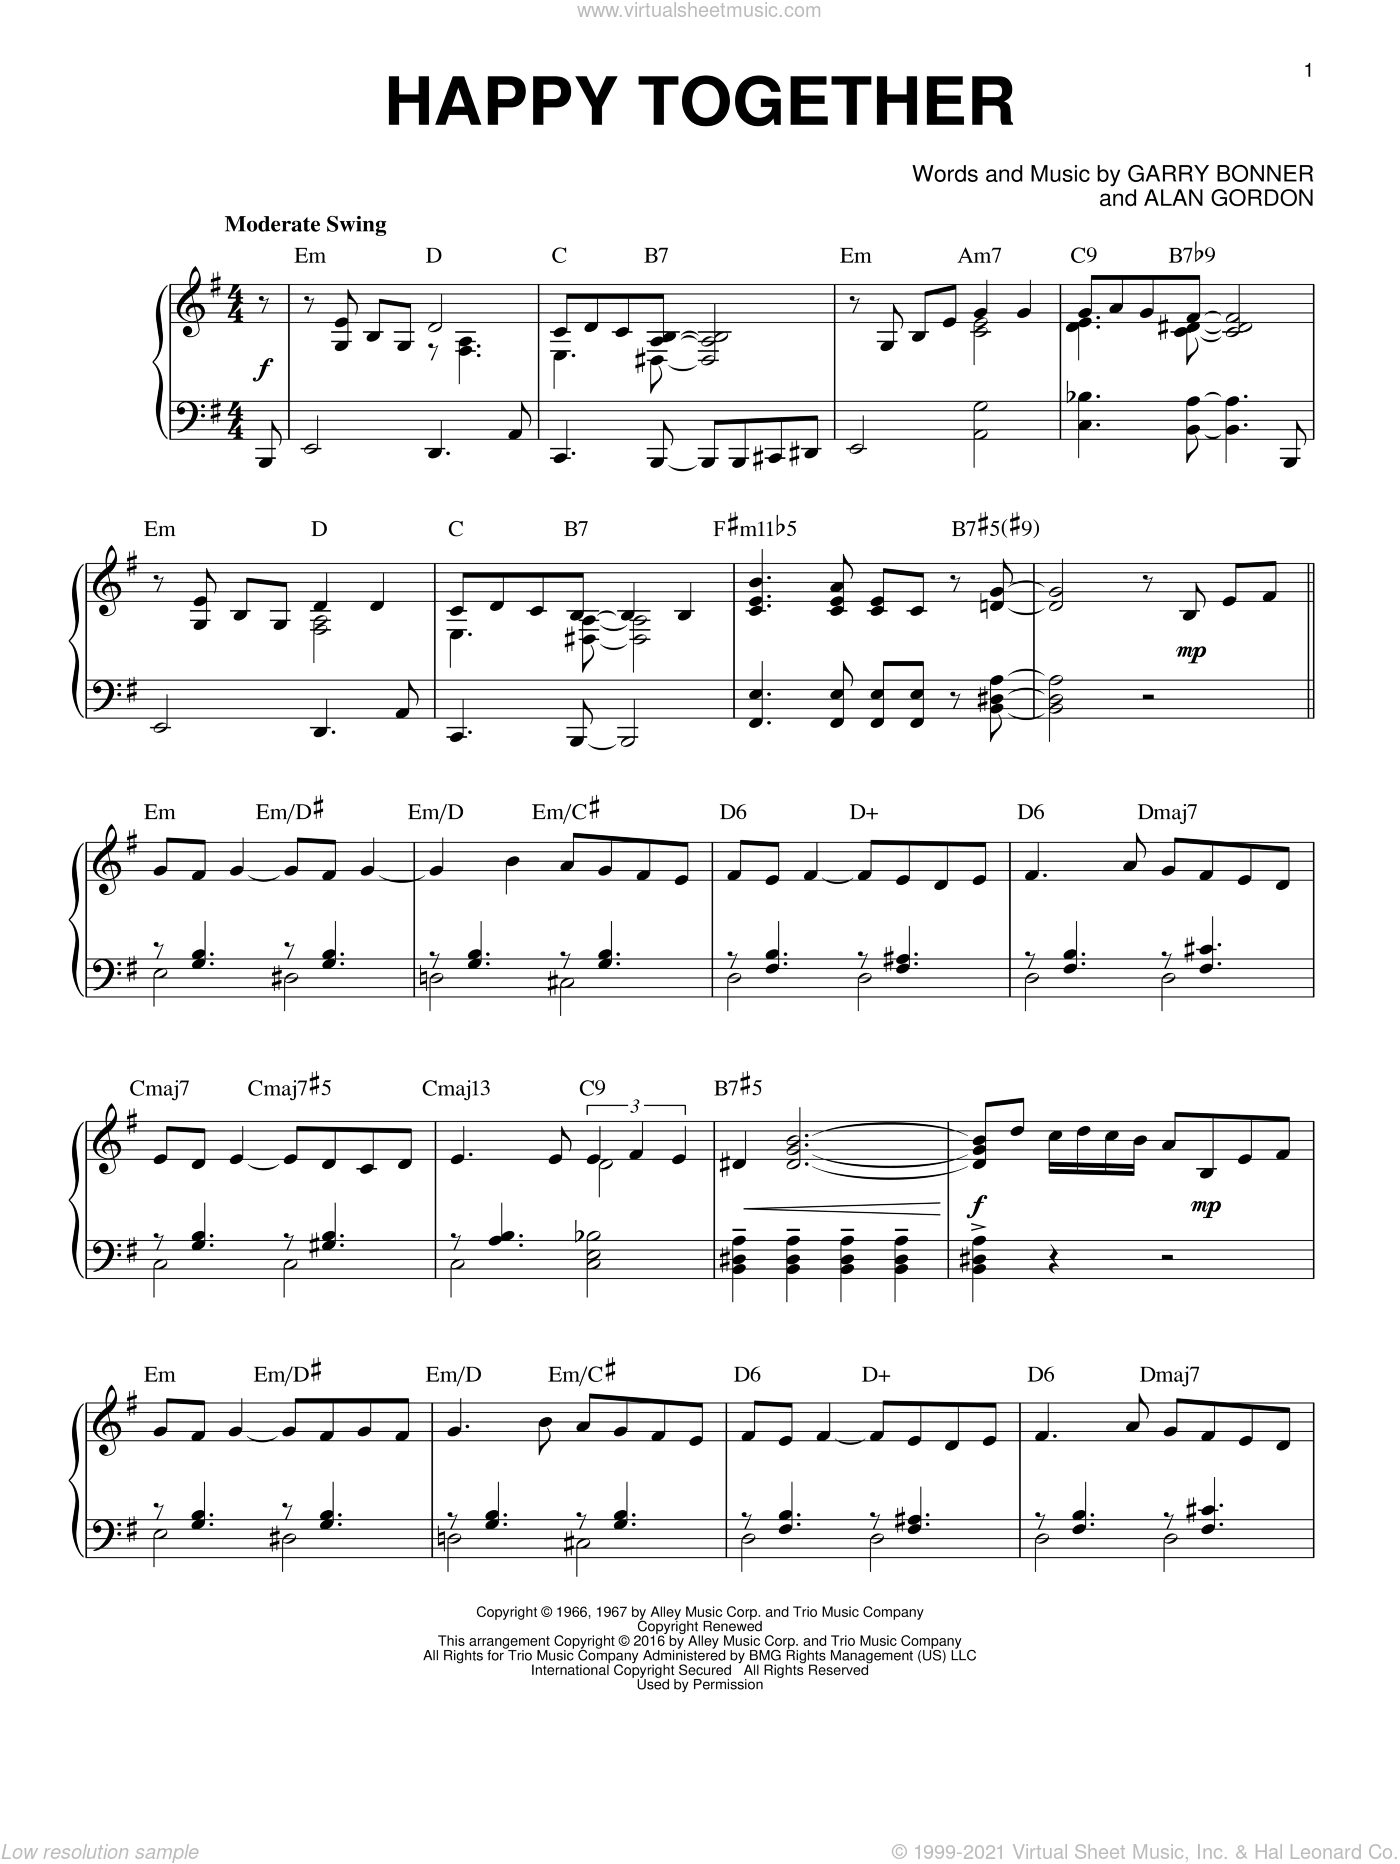 Happy Together [Jazz version] (arr. Brent Edstrom) sheet music for piano solo by The Turtles, Alan Gordon and Garry Bonner, intermediate skill level